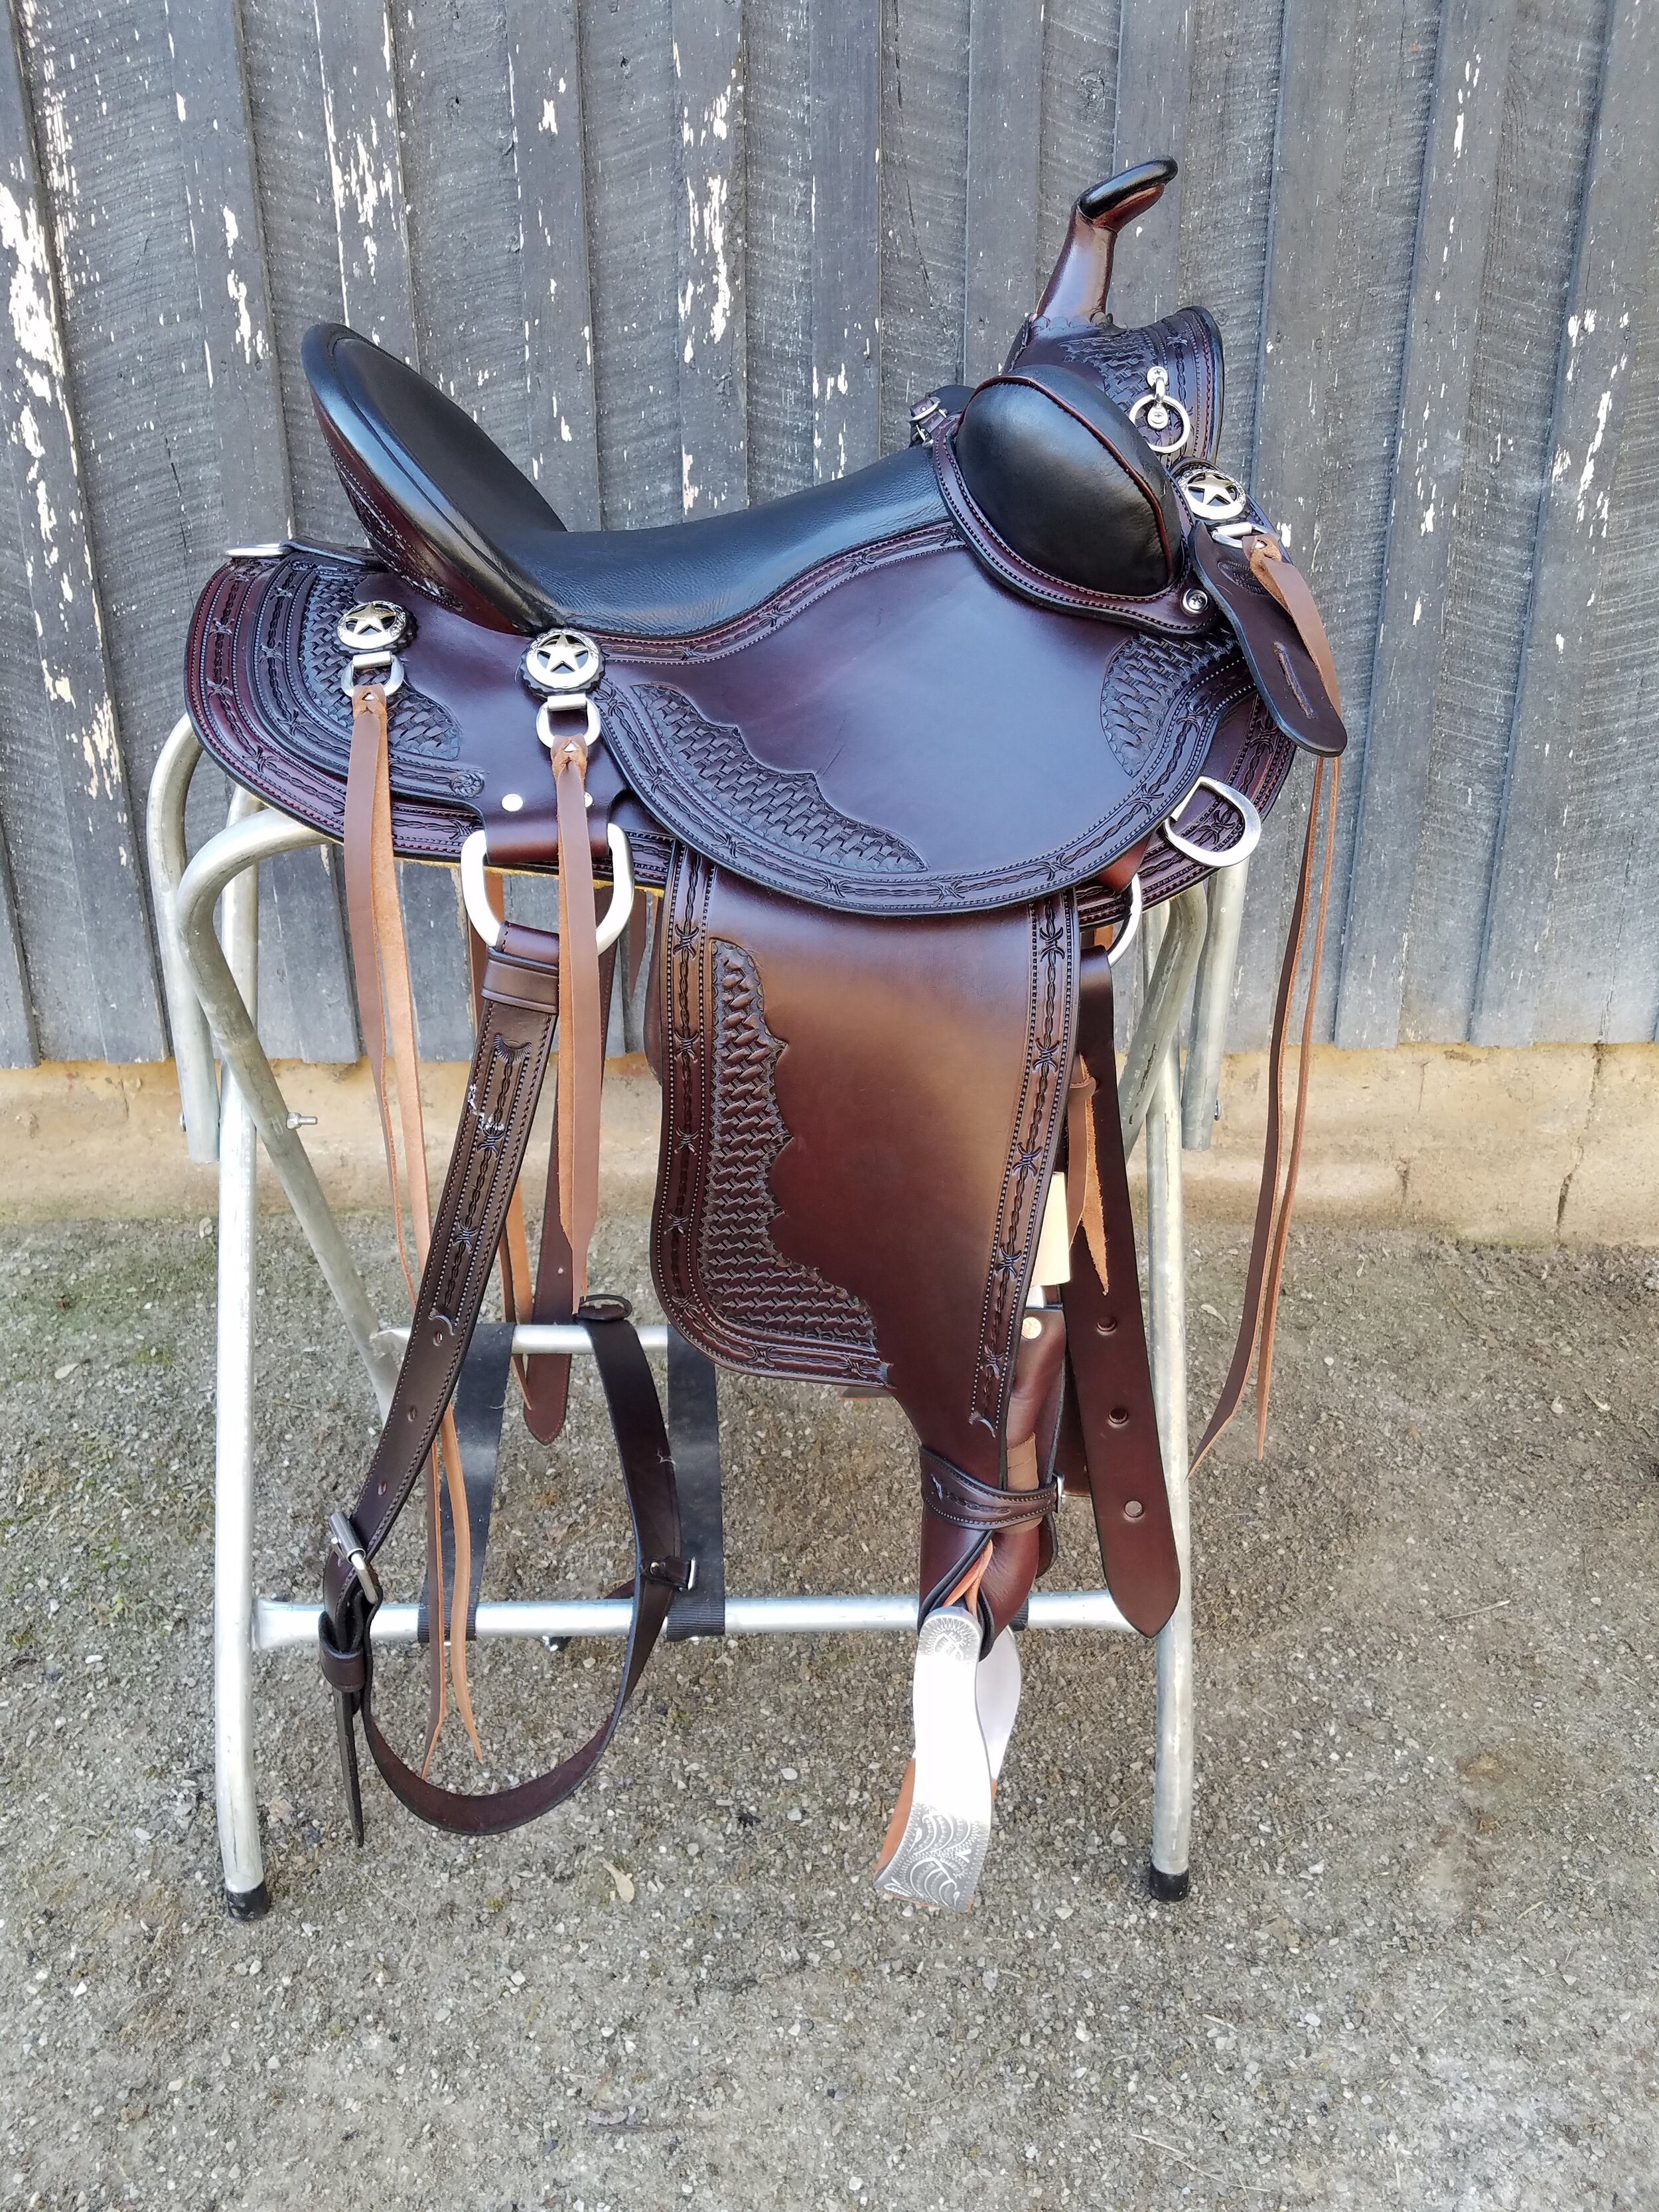 "15"" Custom Old Timer by Eli Miller - Lightweight without losing quality. This saddle has a suspended seat that feel like you are riding on air. Bucking rolls help keep you in the saddle and twisted leathers keep your legs and knees in alignment. Texas stars complete the look."